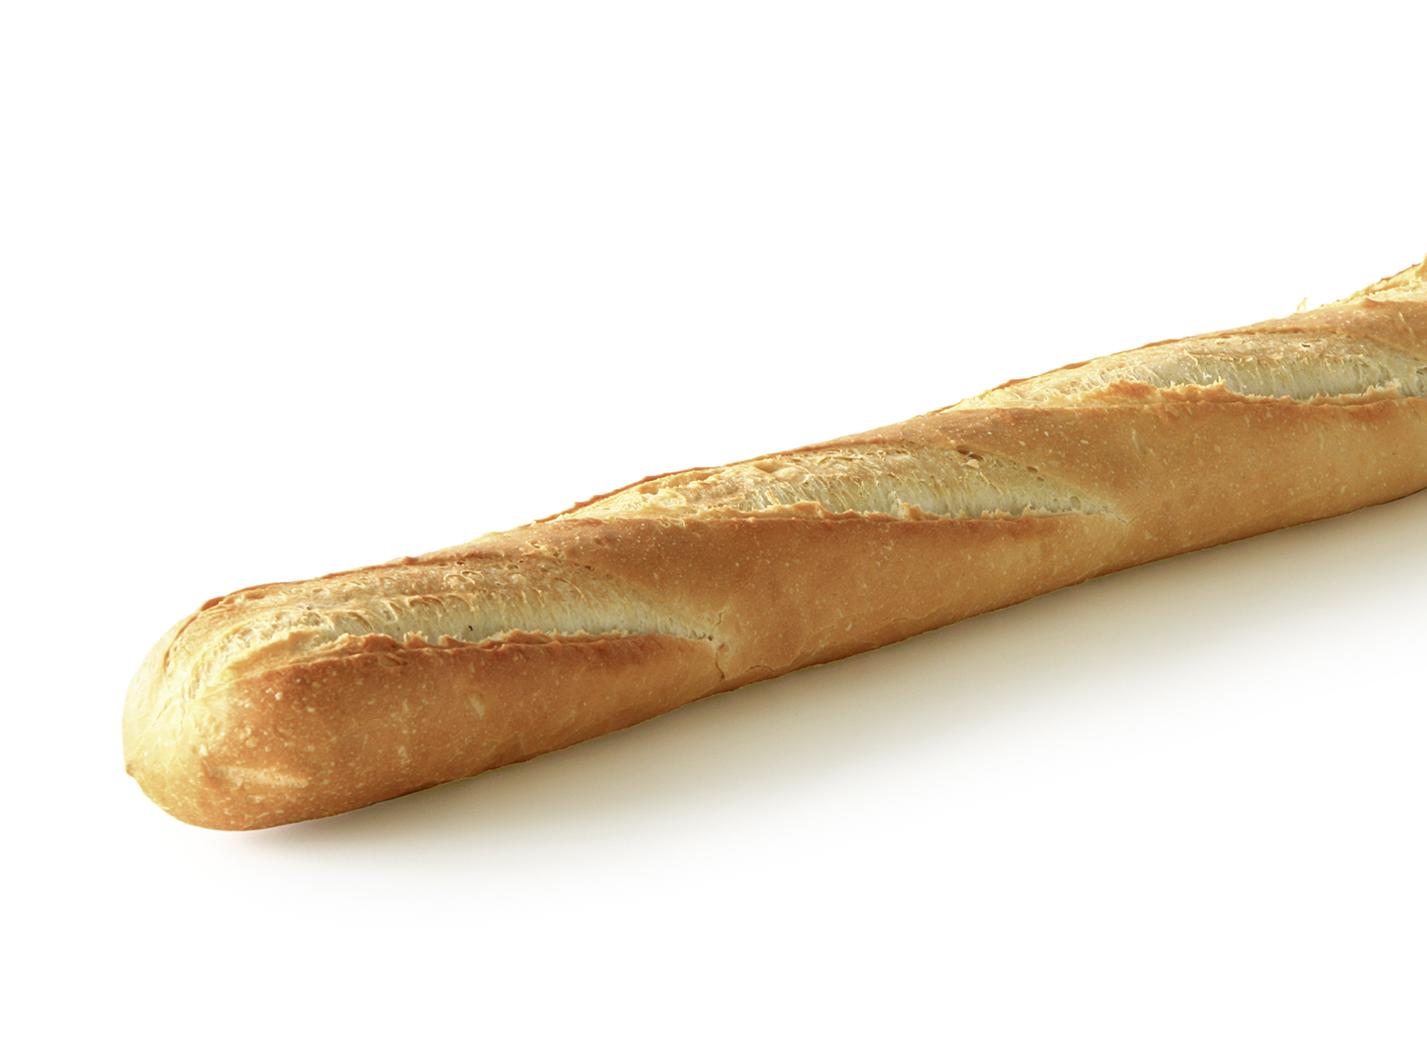 Baguette - Wheat bread/ baked according to the French tradition length: 57 cm